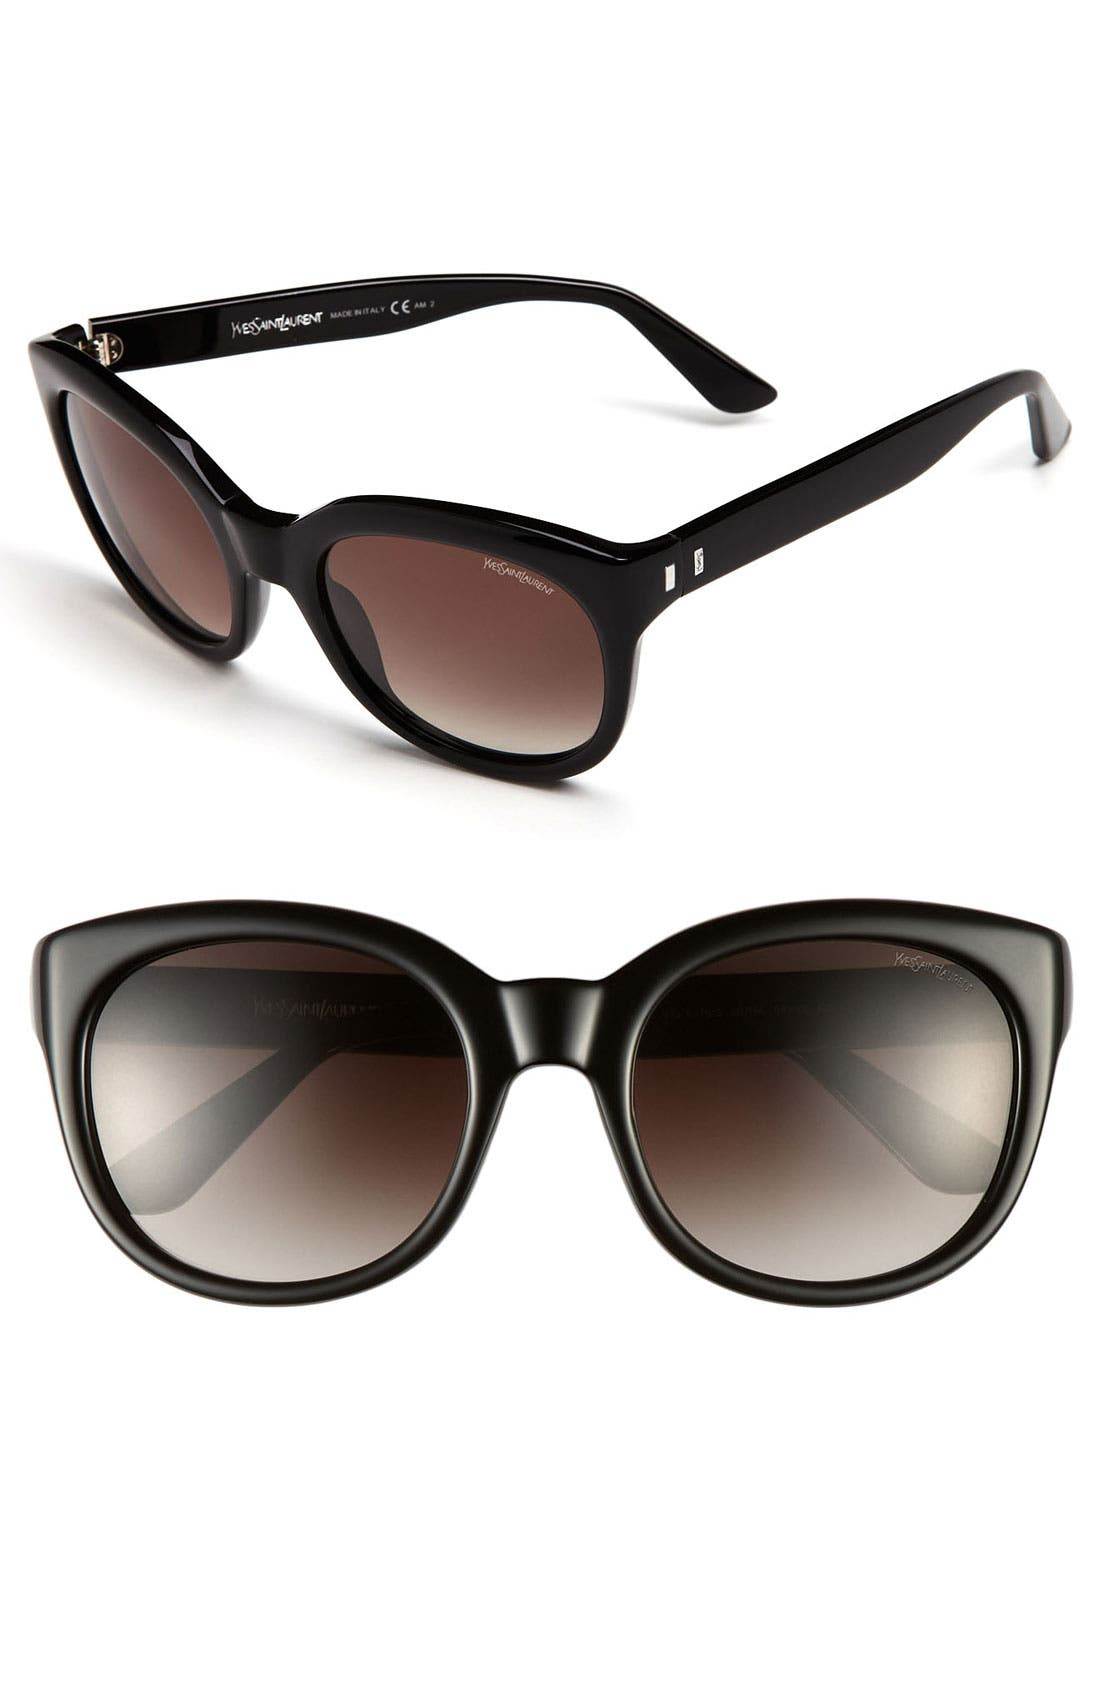 Saint Laurent Cat's Eye Sunglasses,                         Main,                         color,